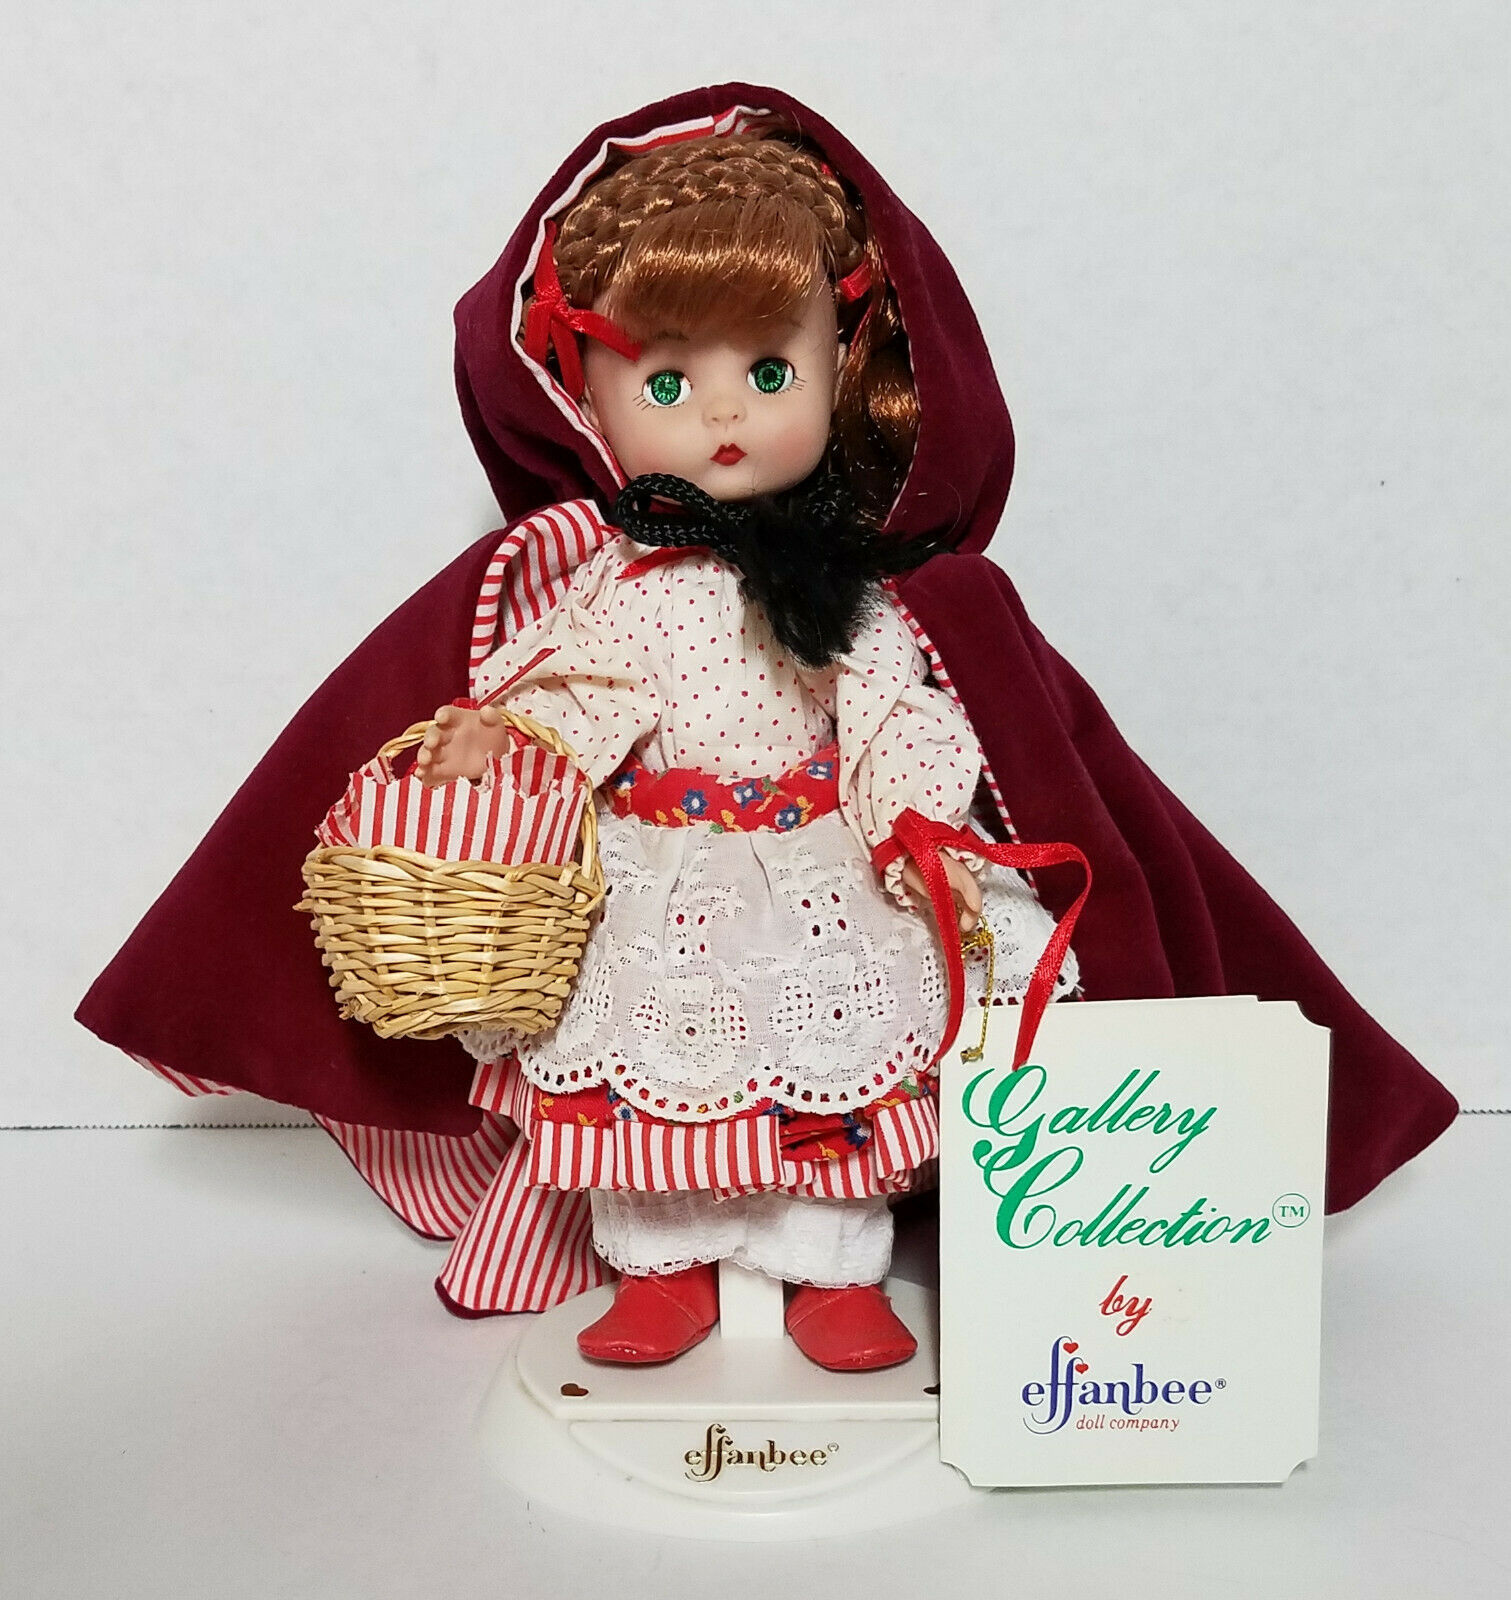 1988 Effanbee Little Red Riding Hood Doll MV103 Story Book Series 8-1/2""